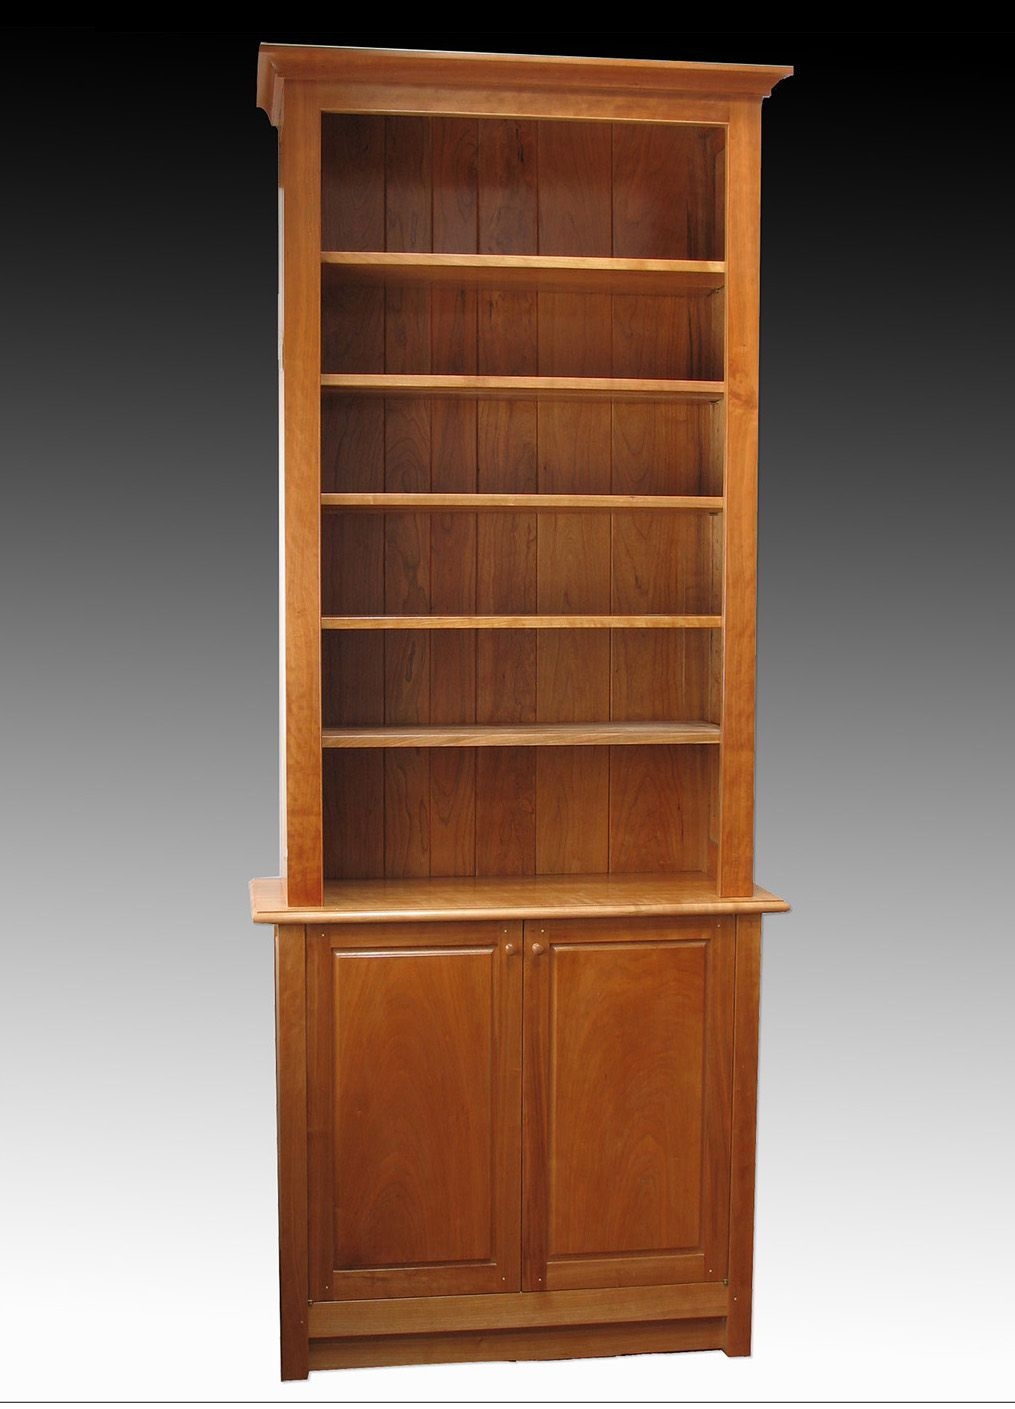 Custom Free Standing Bookcase By David Klenk Custommade Com